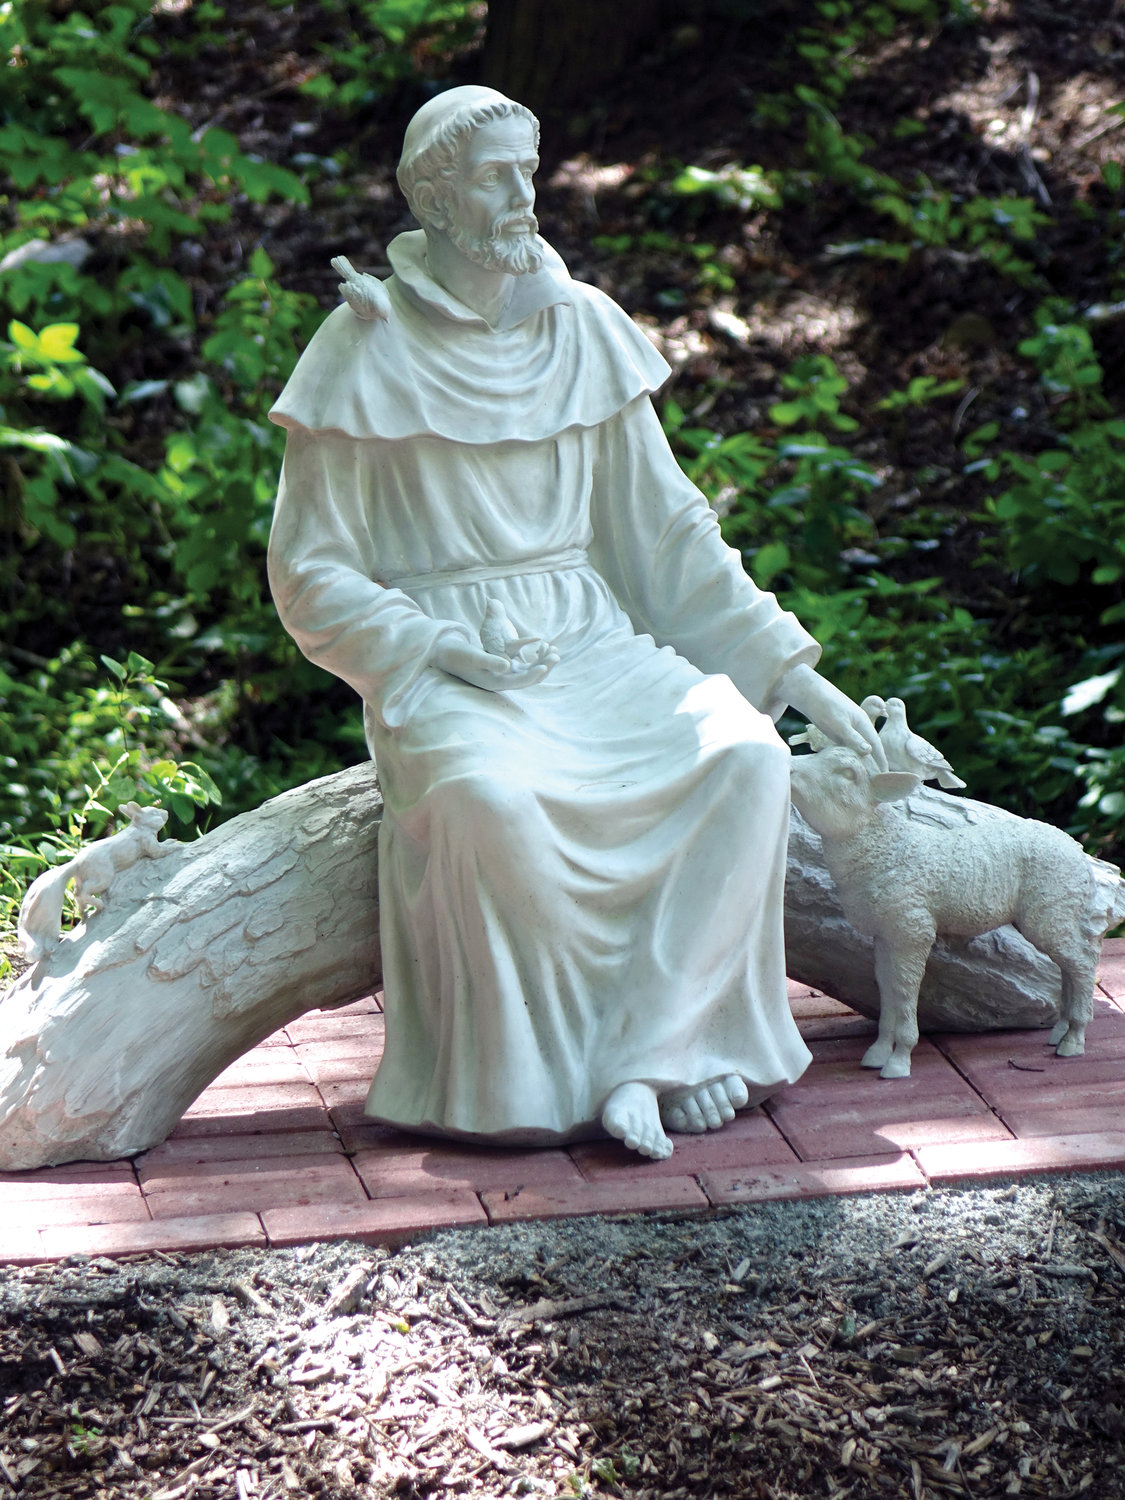 A statue of St. Francis is part of the St. Francis Prayer Garden.